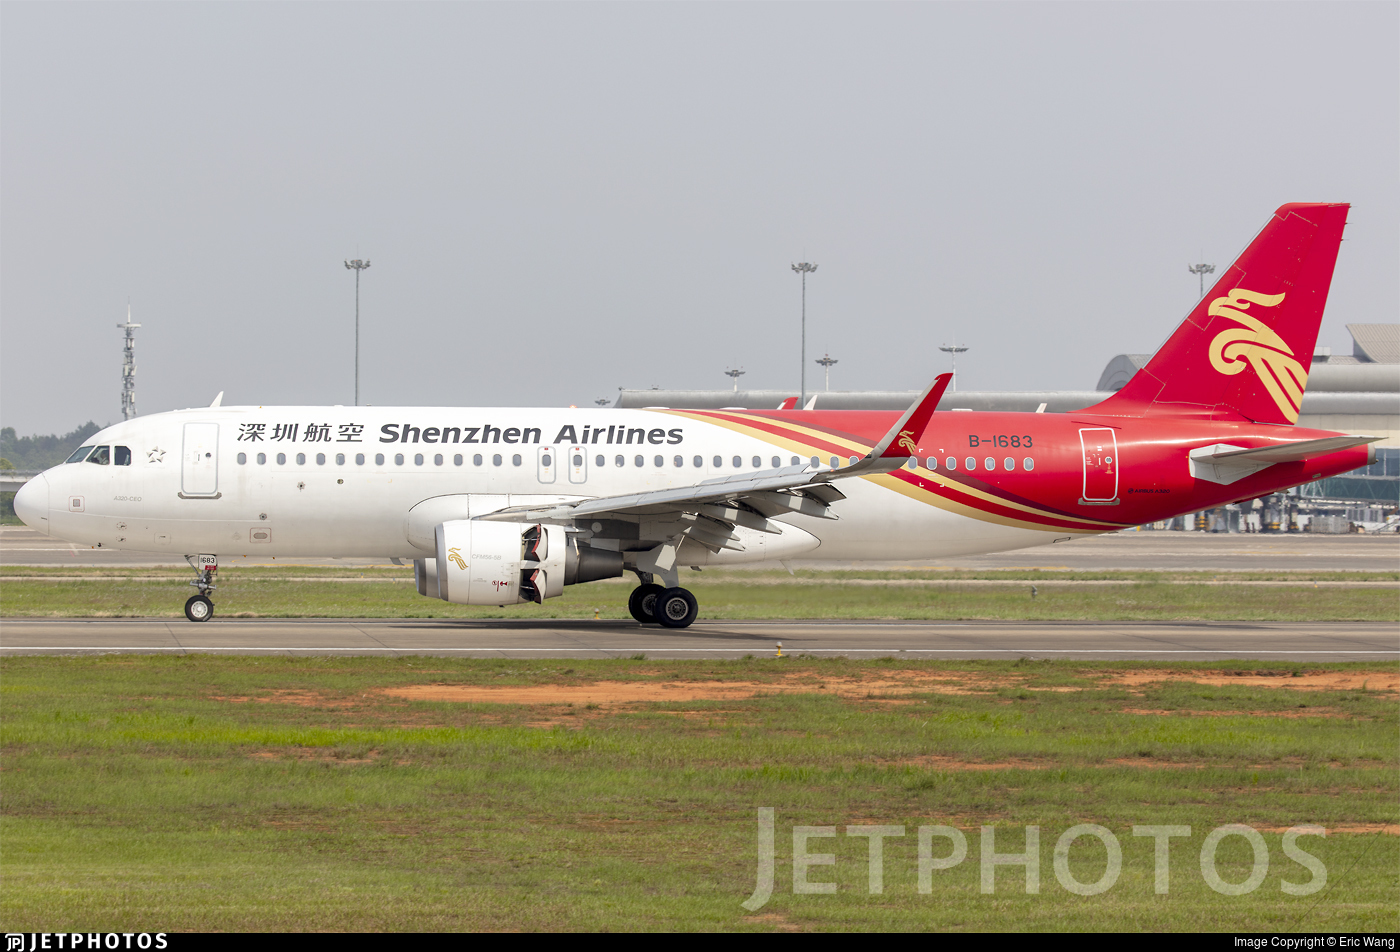 B-1683 - Airbus A320-214 - Shenzhen Airlines